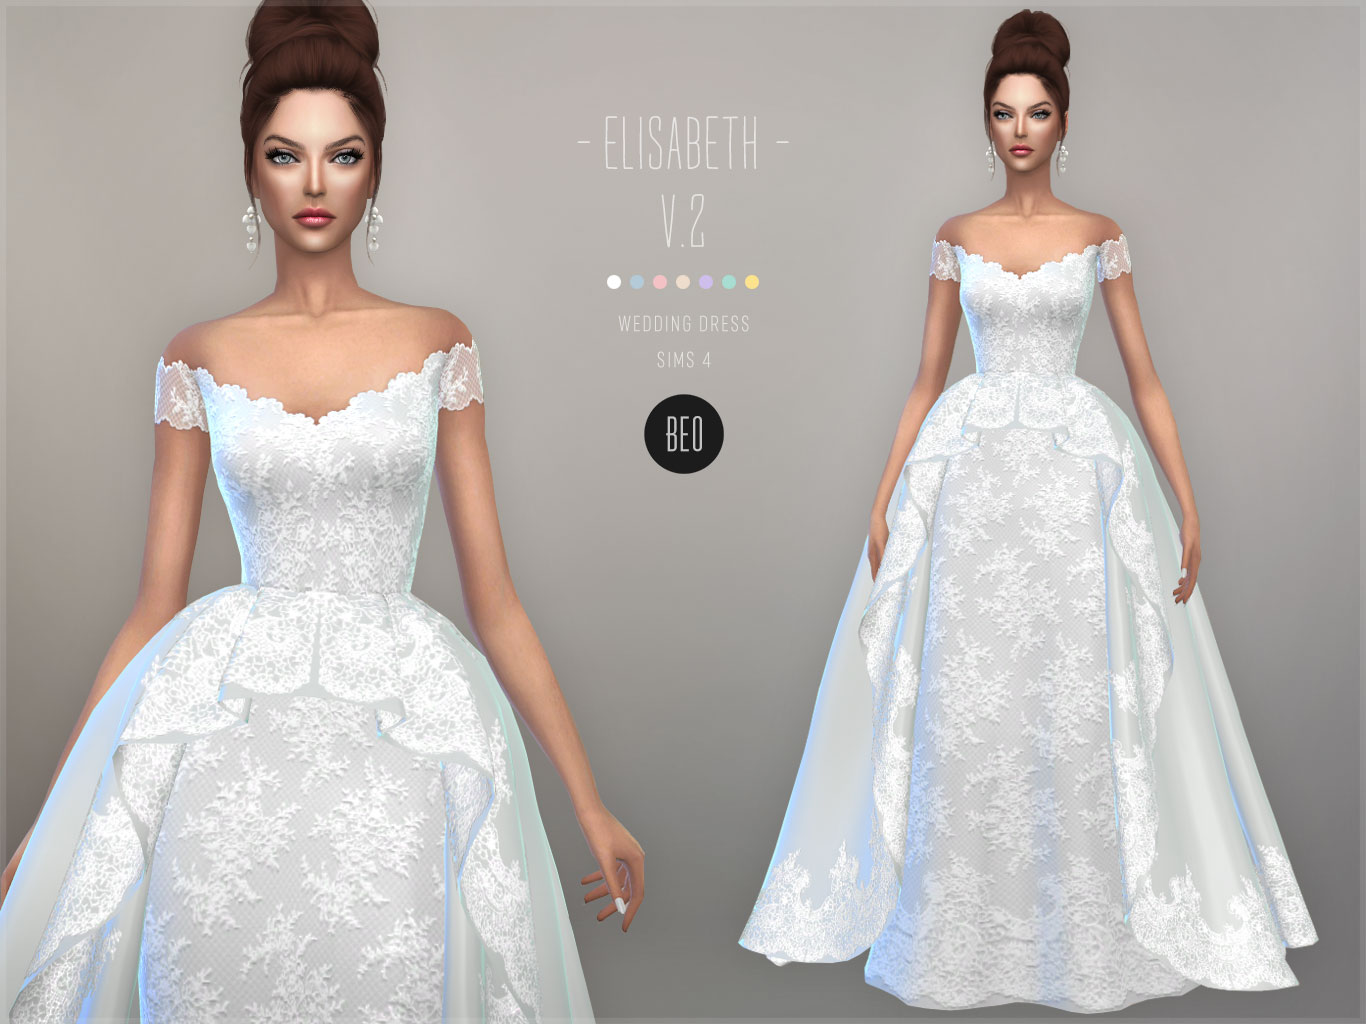 Wedding gown - Elisabeth V.2 for The Sims 4 by BEO